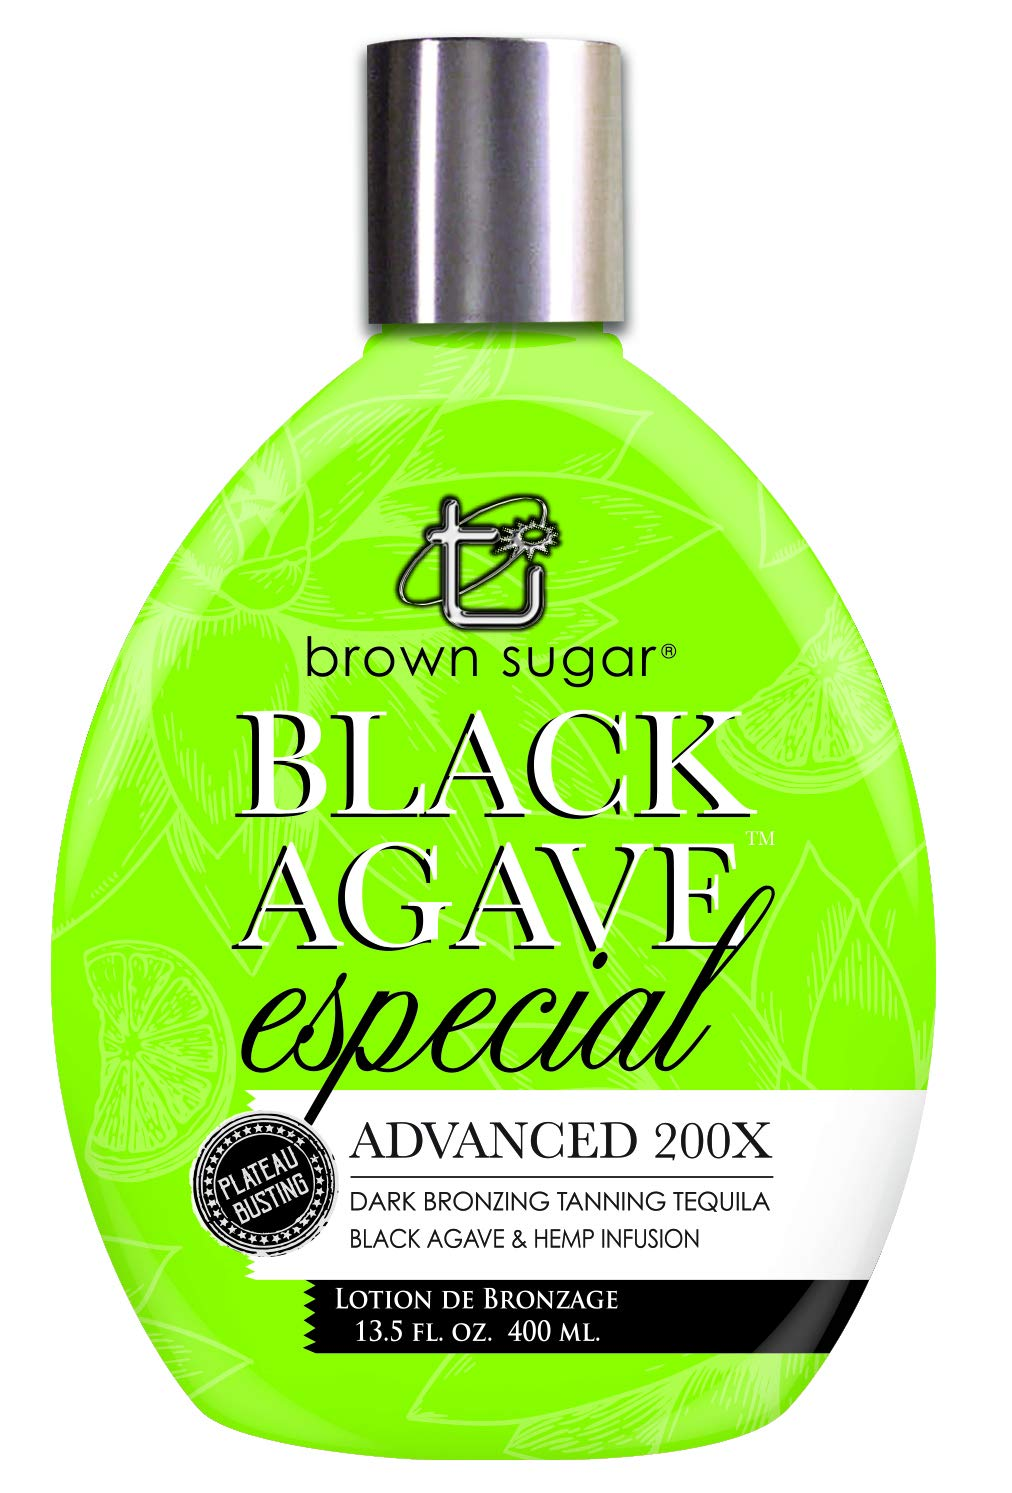 Brown Sugar BLACK AGAVE ESPECIAL 200X Dark Bronzer - 13.5 oz.